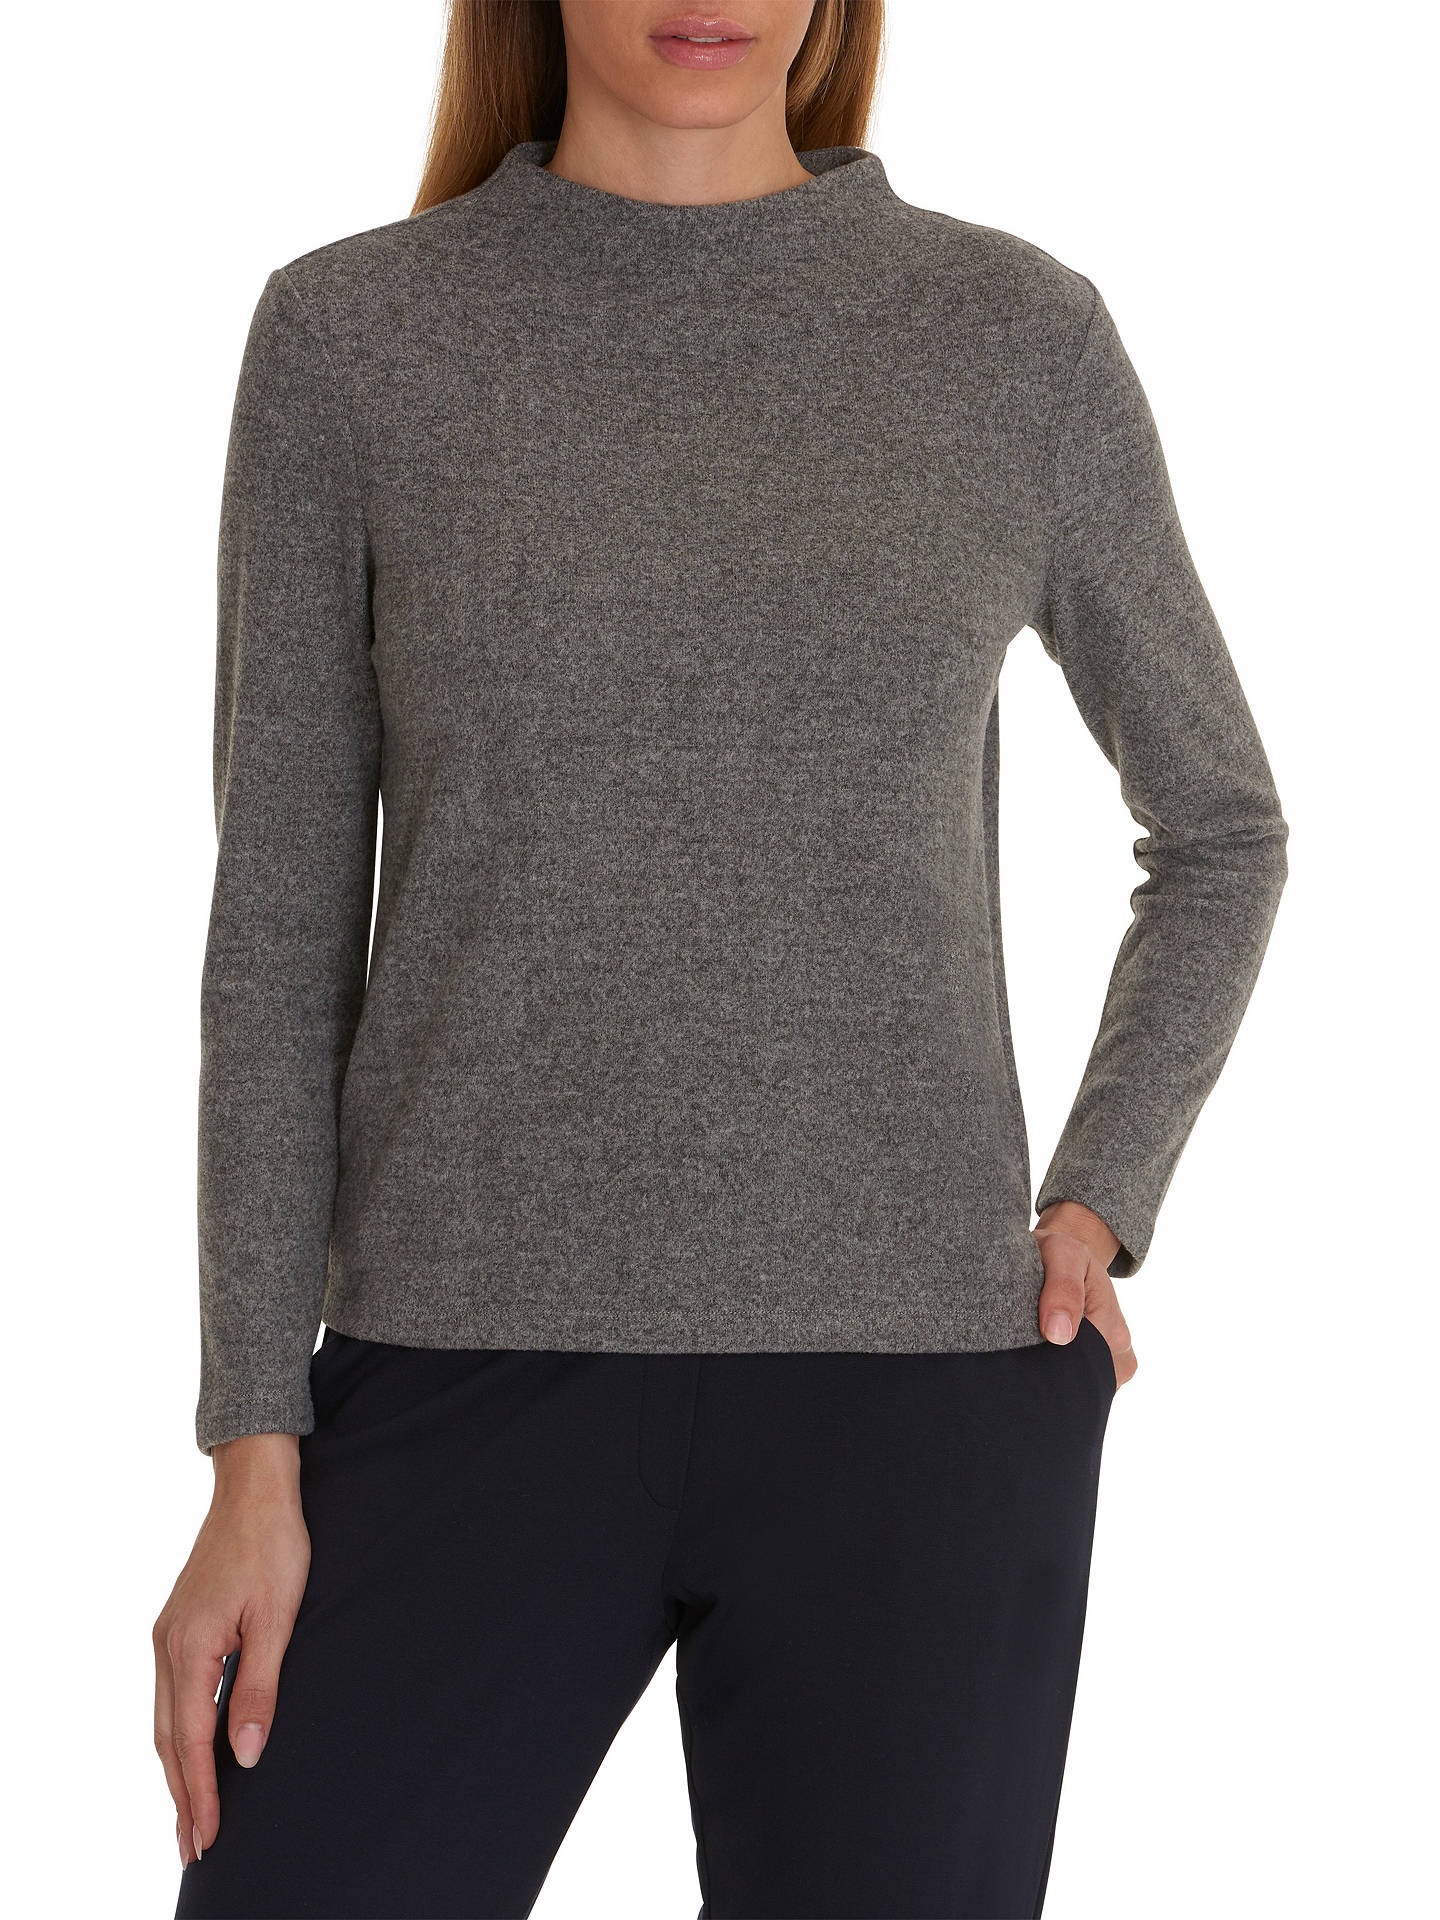 BuyBetty Barclay Pullover Jumper, Light Silver Melange, 10 Online at johnlewis.com